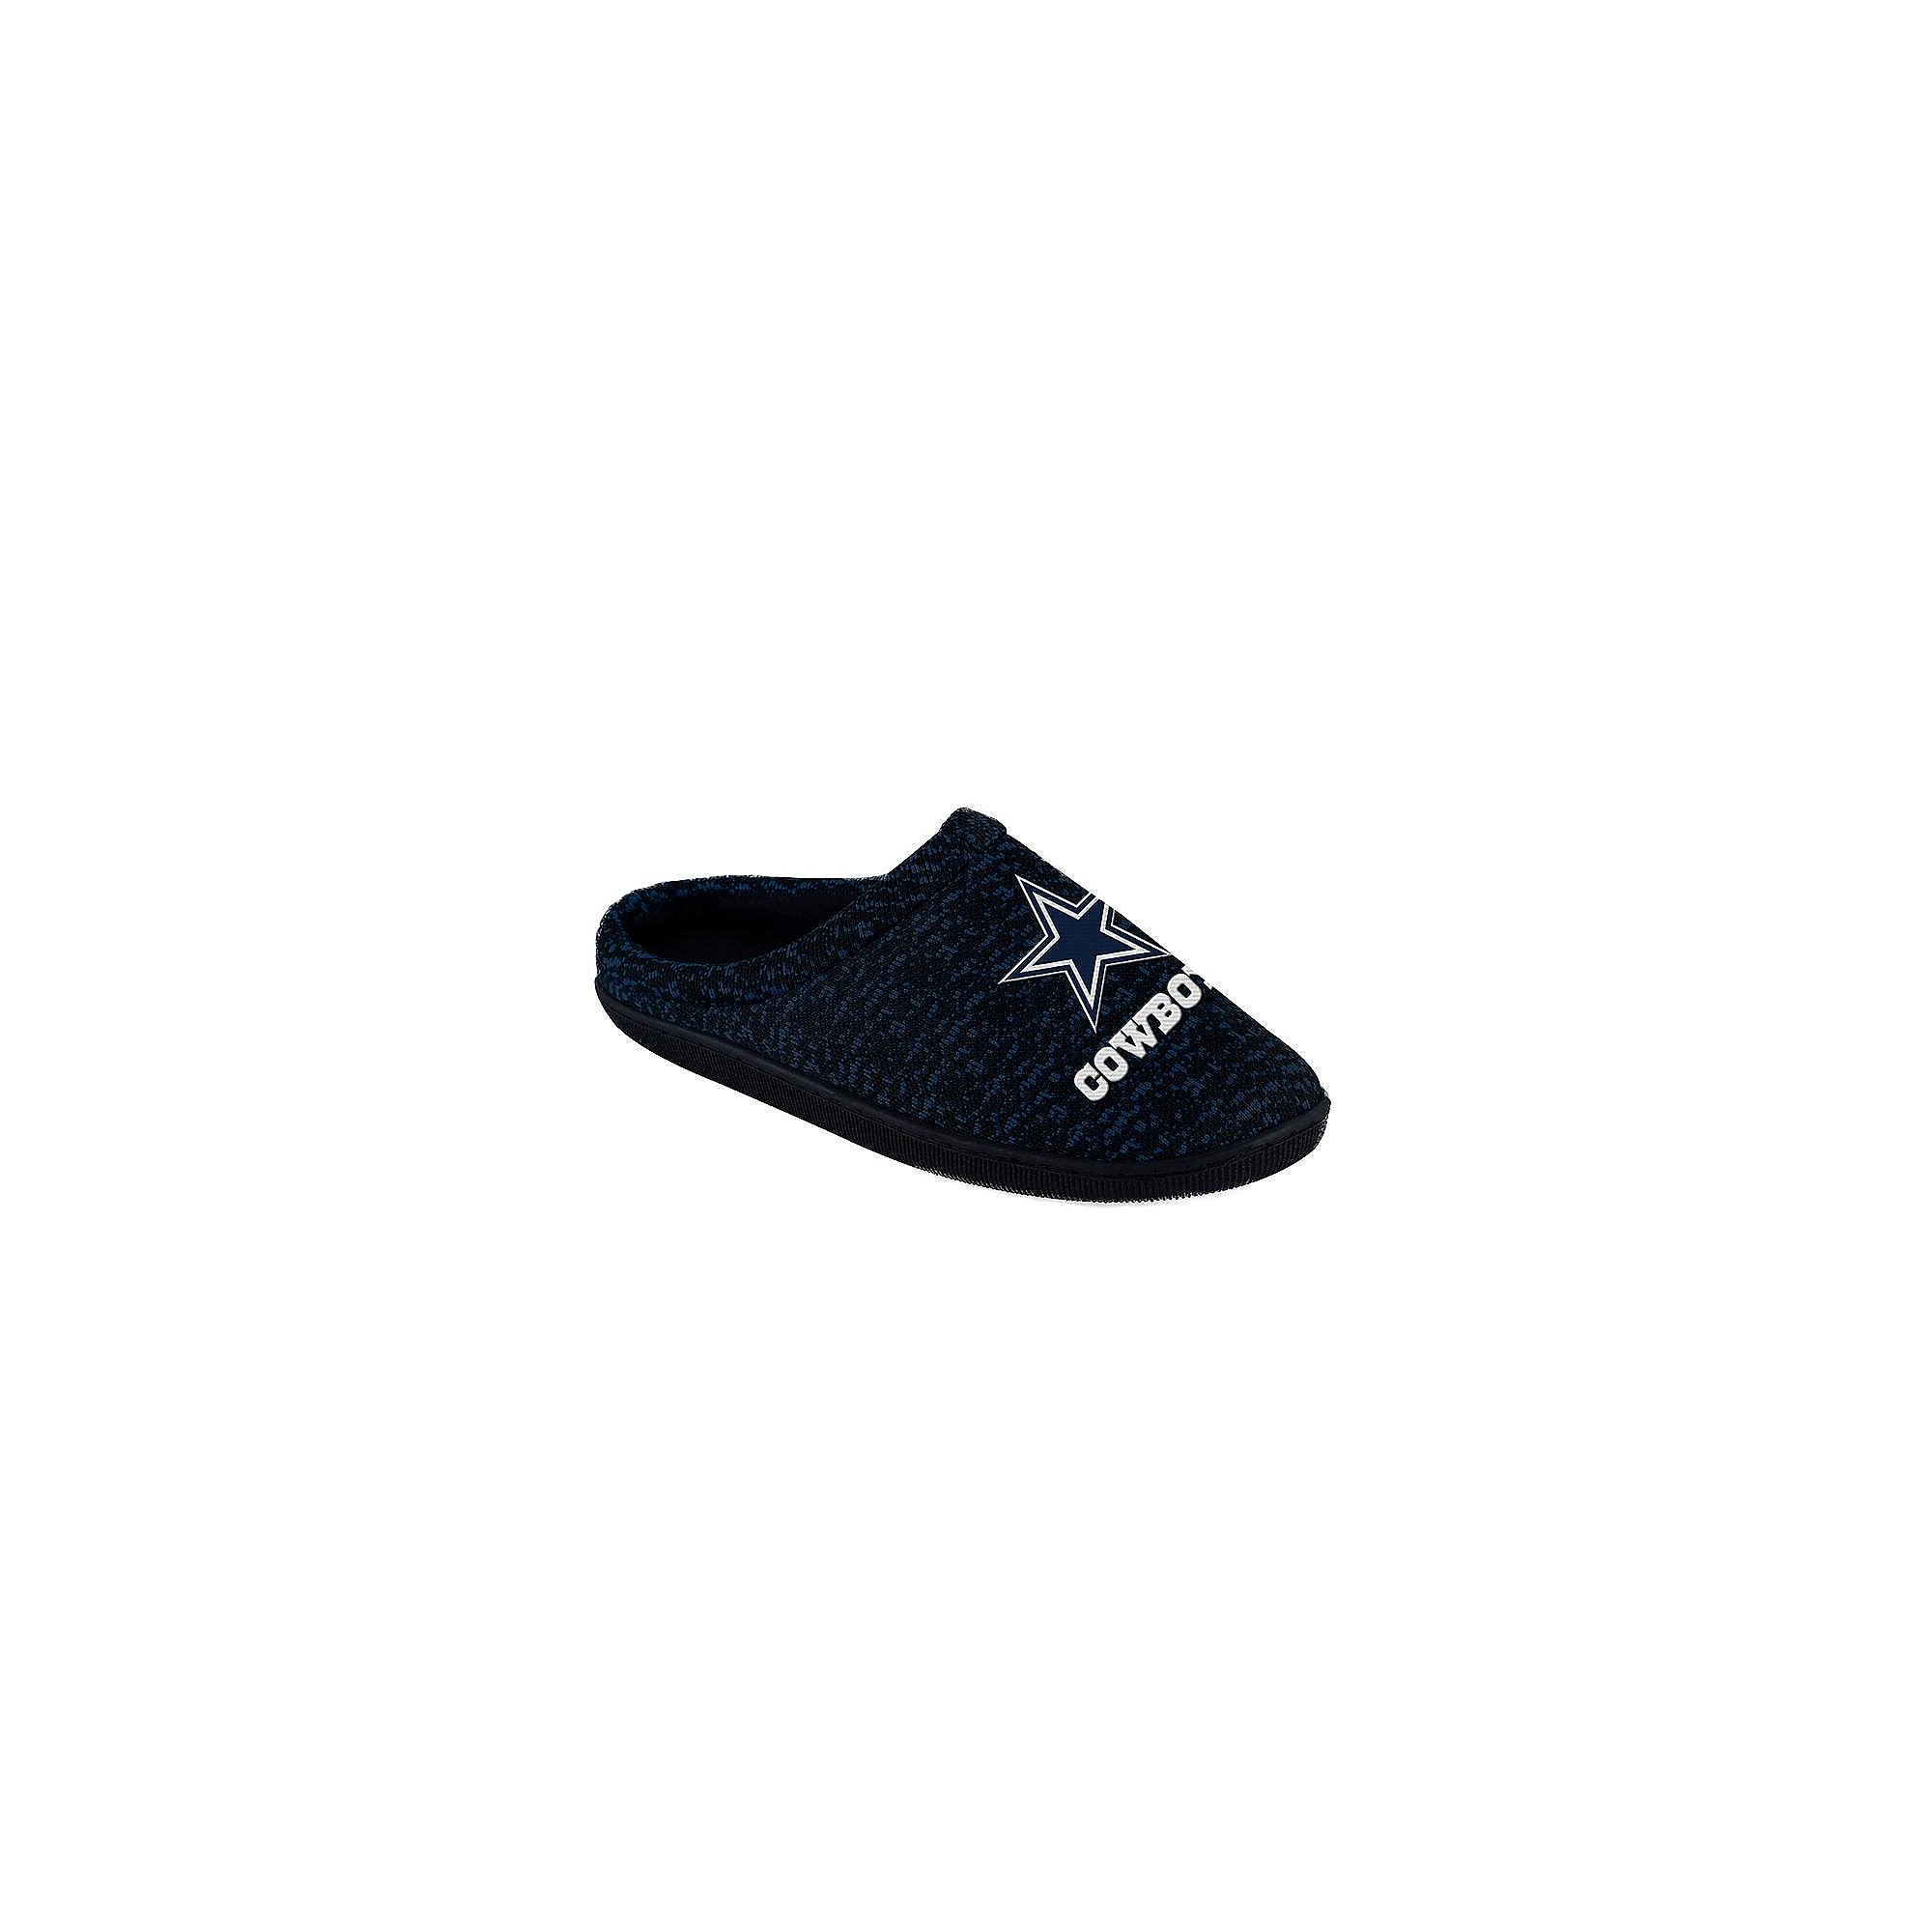 Dallas Cowboys Men's Sole Slippers - Size X-Large